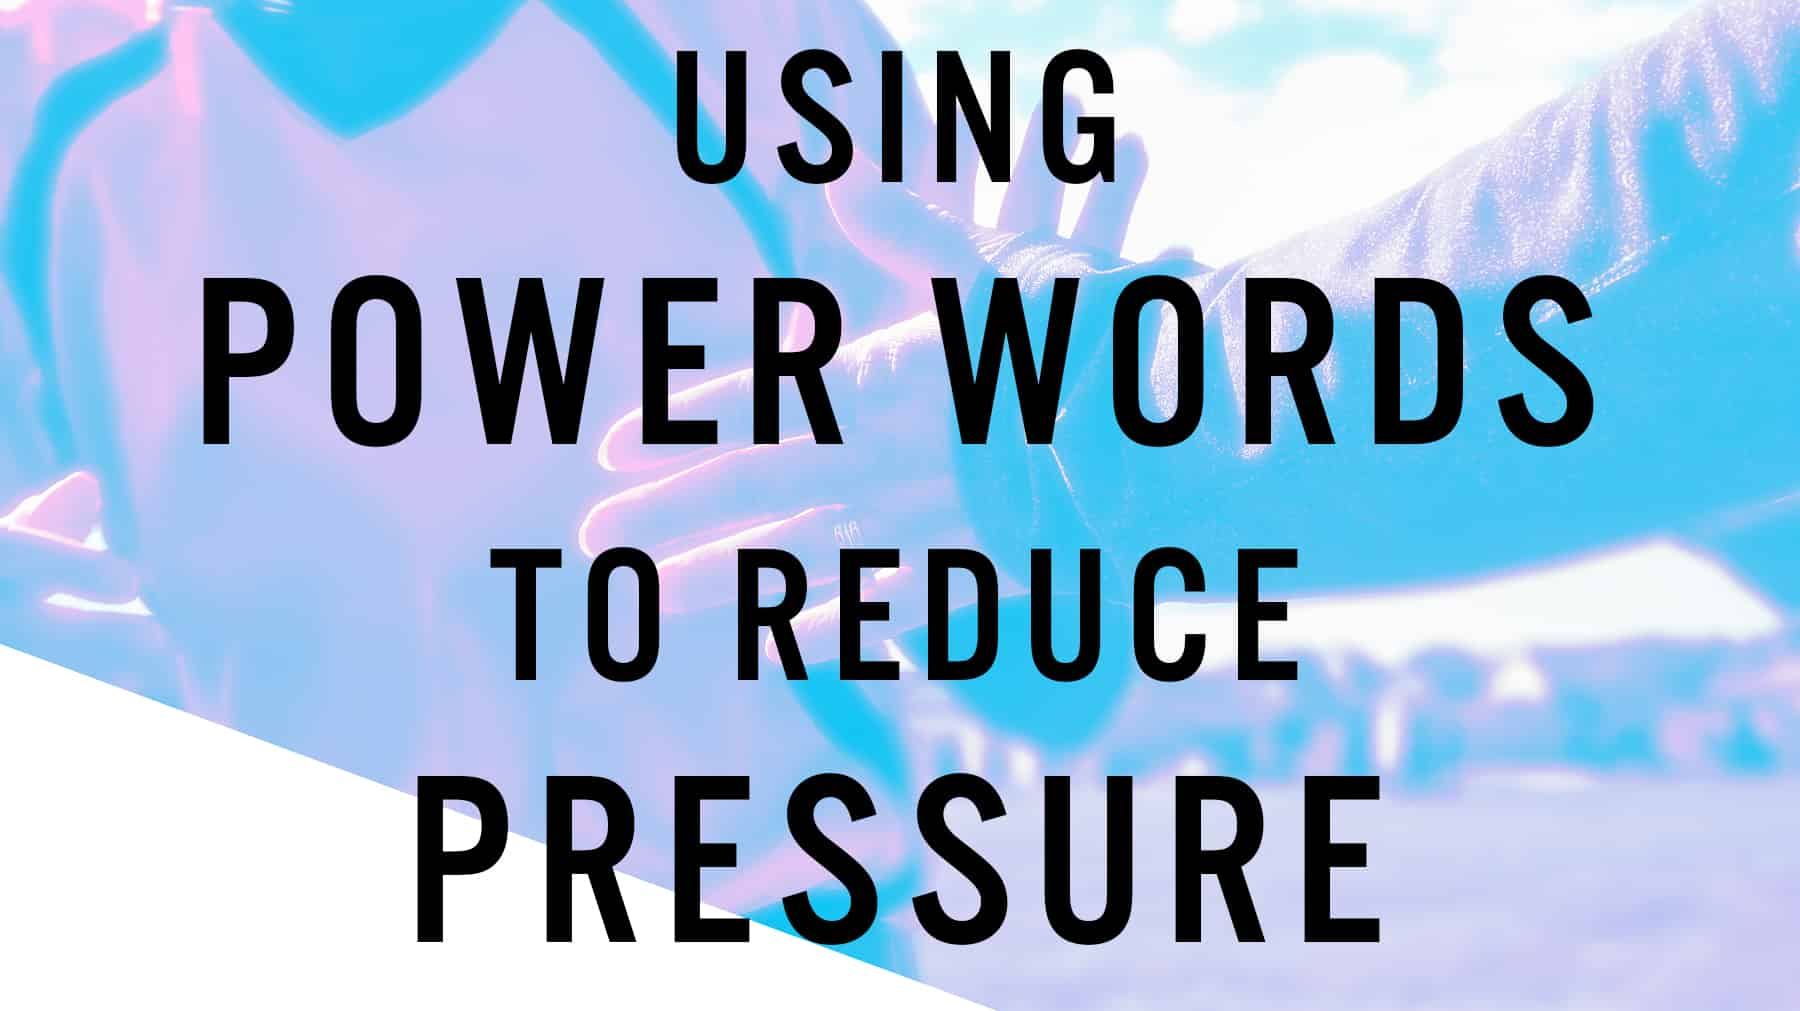 Using power words to reduce pressure